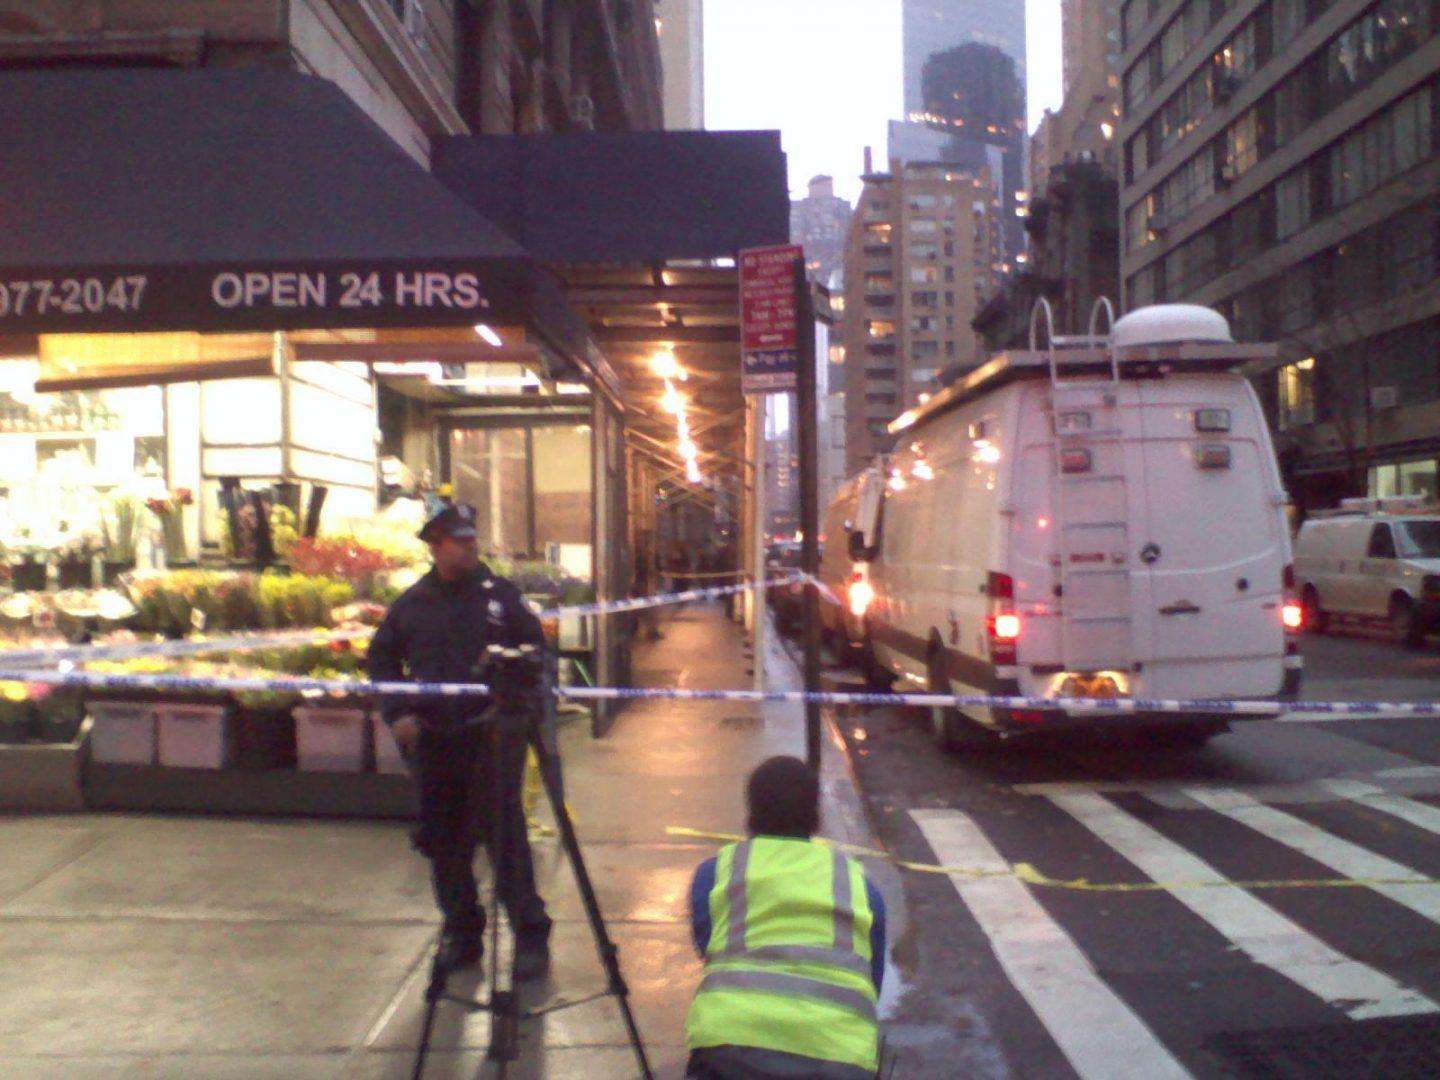 Police cordoned off the block of 58th Street between Broadway and 7th Avenue after a man was shot and killed at 2 p.m. Monday. (Mike Madden/The Observer)